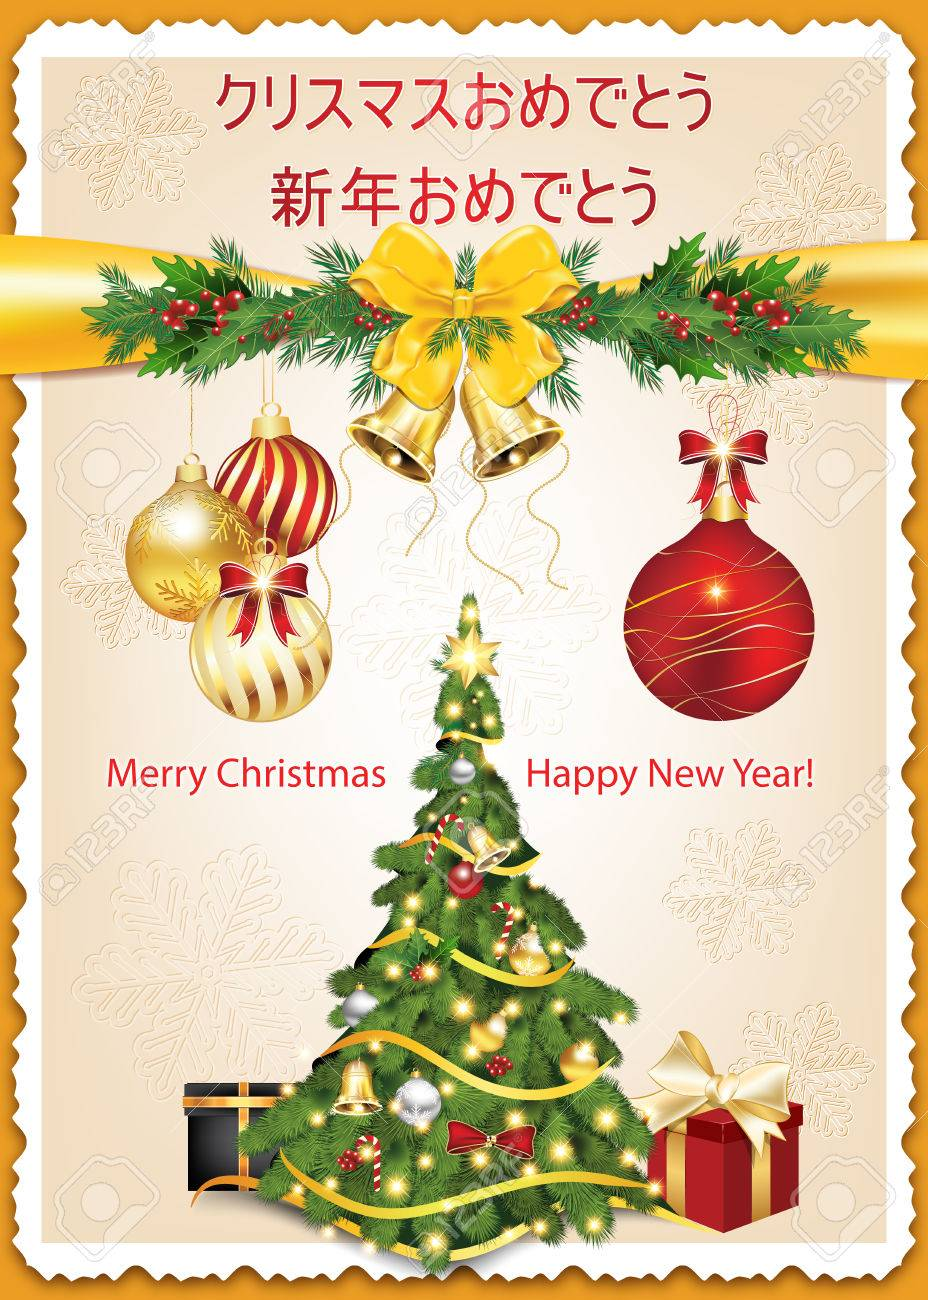 Japanese Season\'s Greetings Card (Merry Christmas And Happy New ...